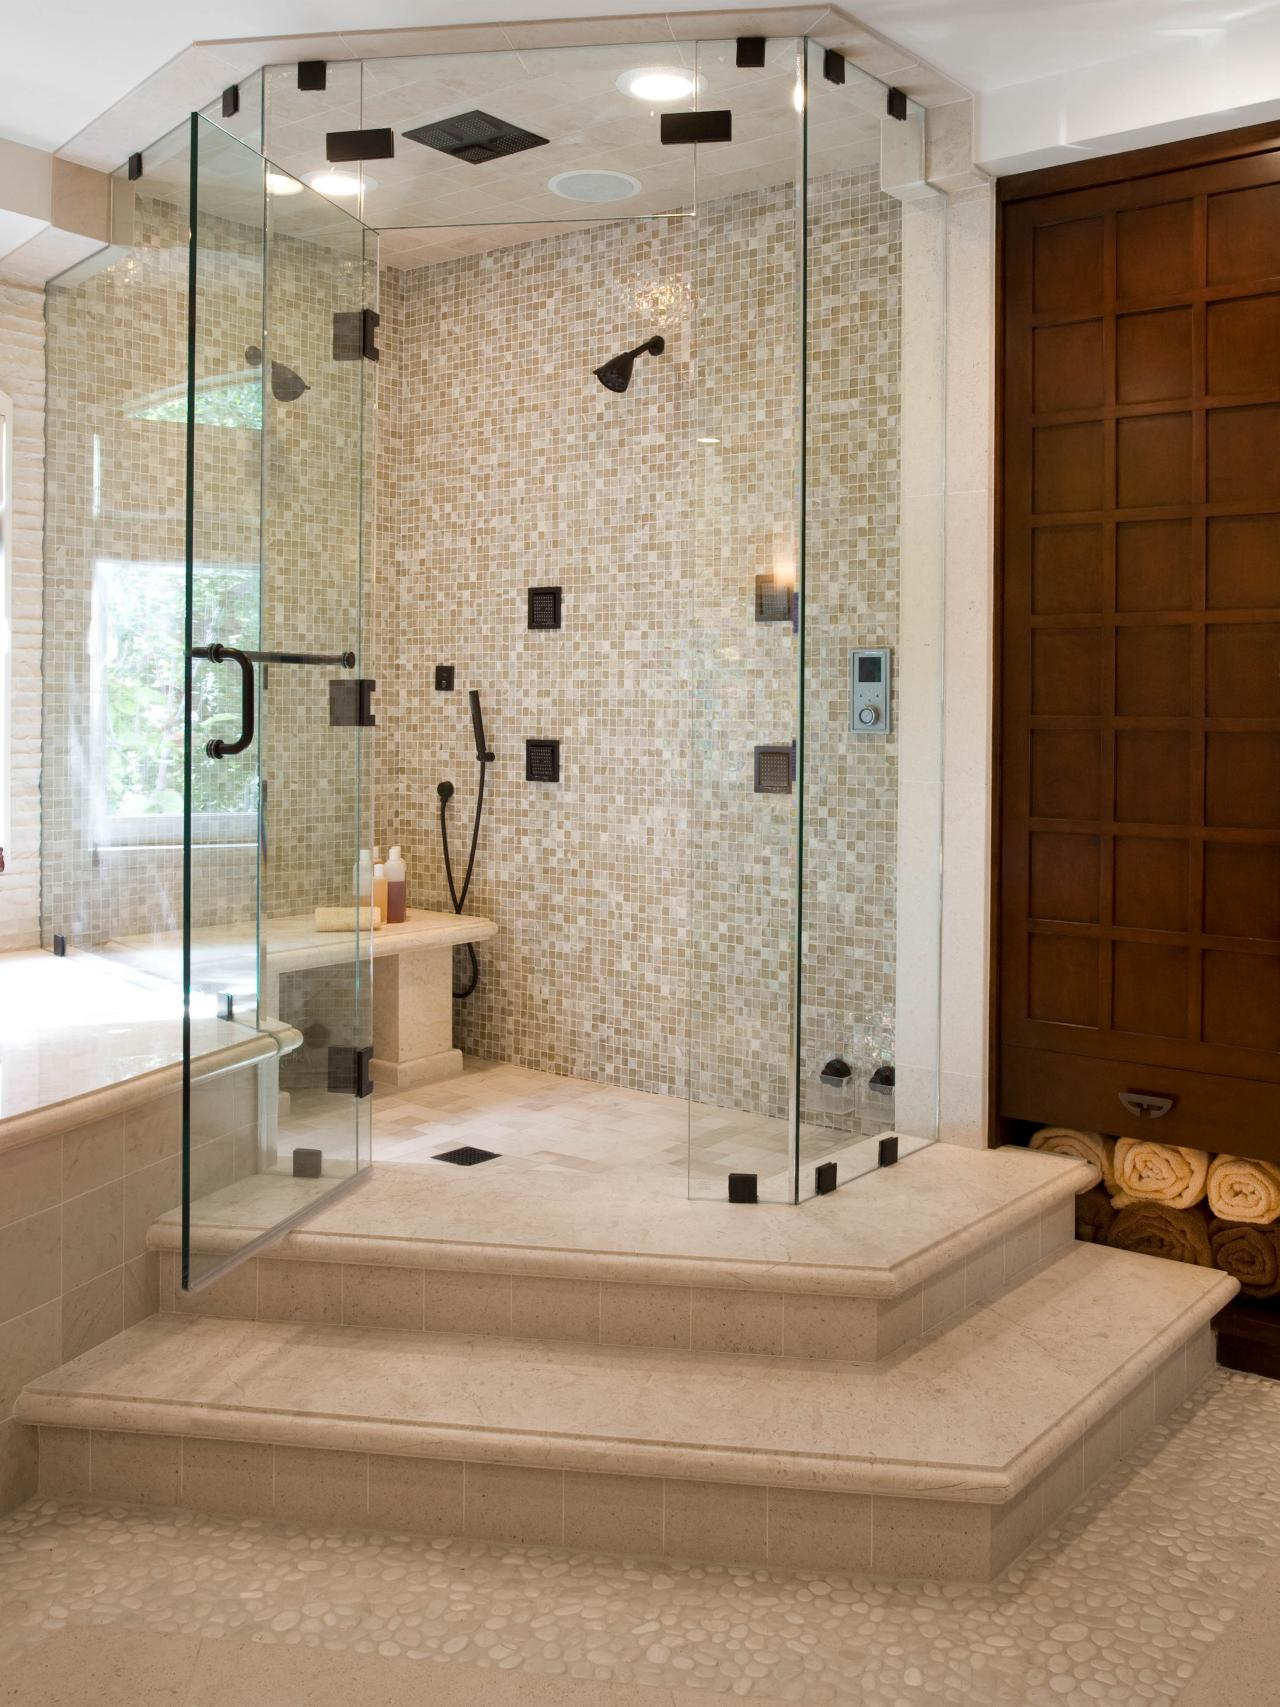 RS_christopher-grubb-brown-asian-bathroom-shower_3x4.jpg.rend.hgtvcom.1280.1707